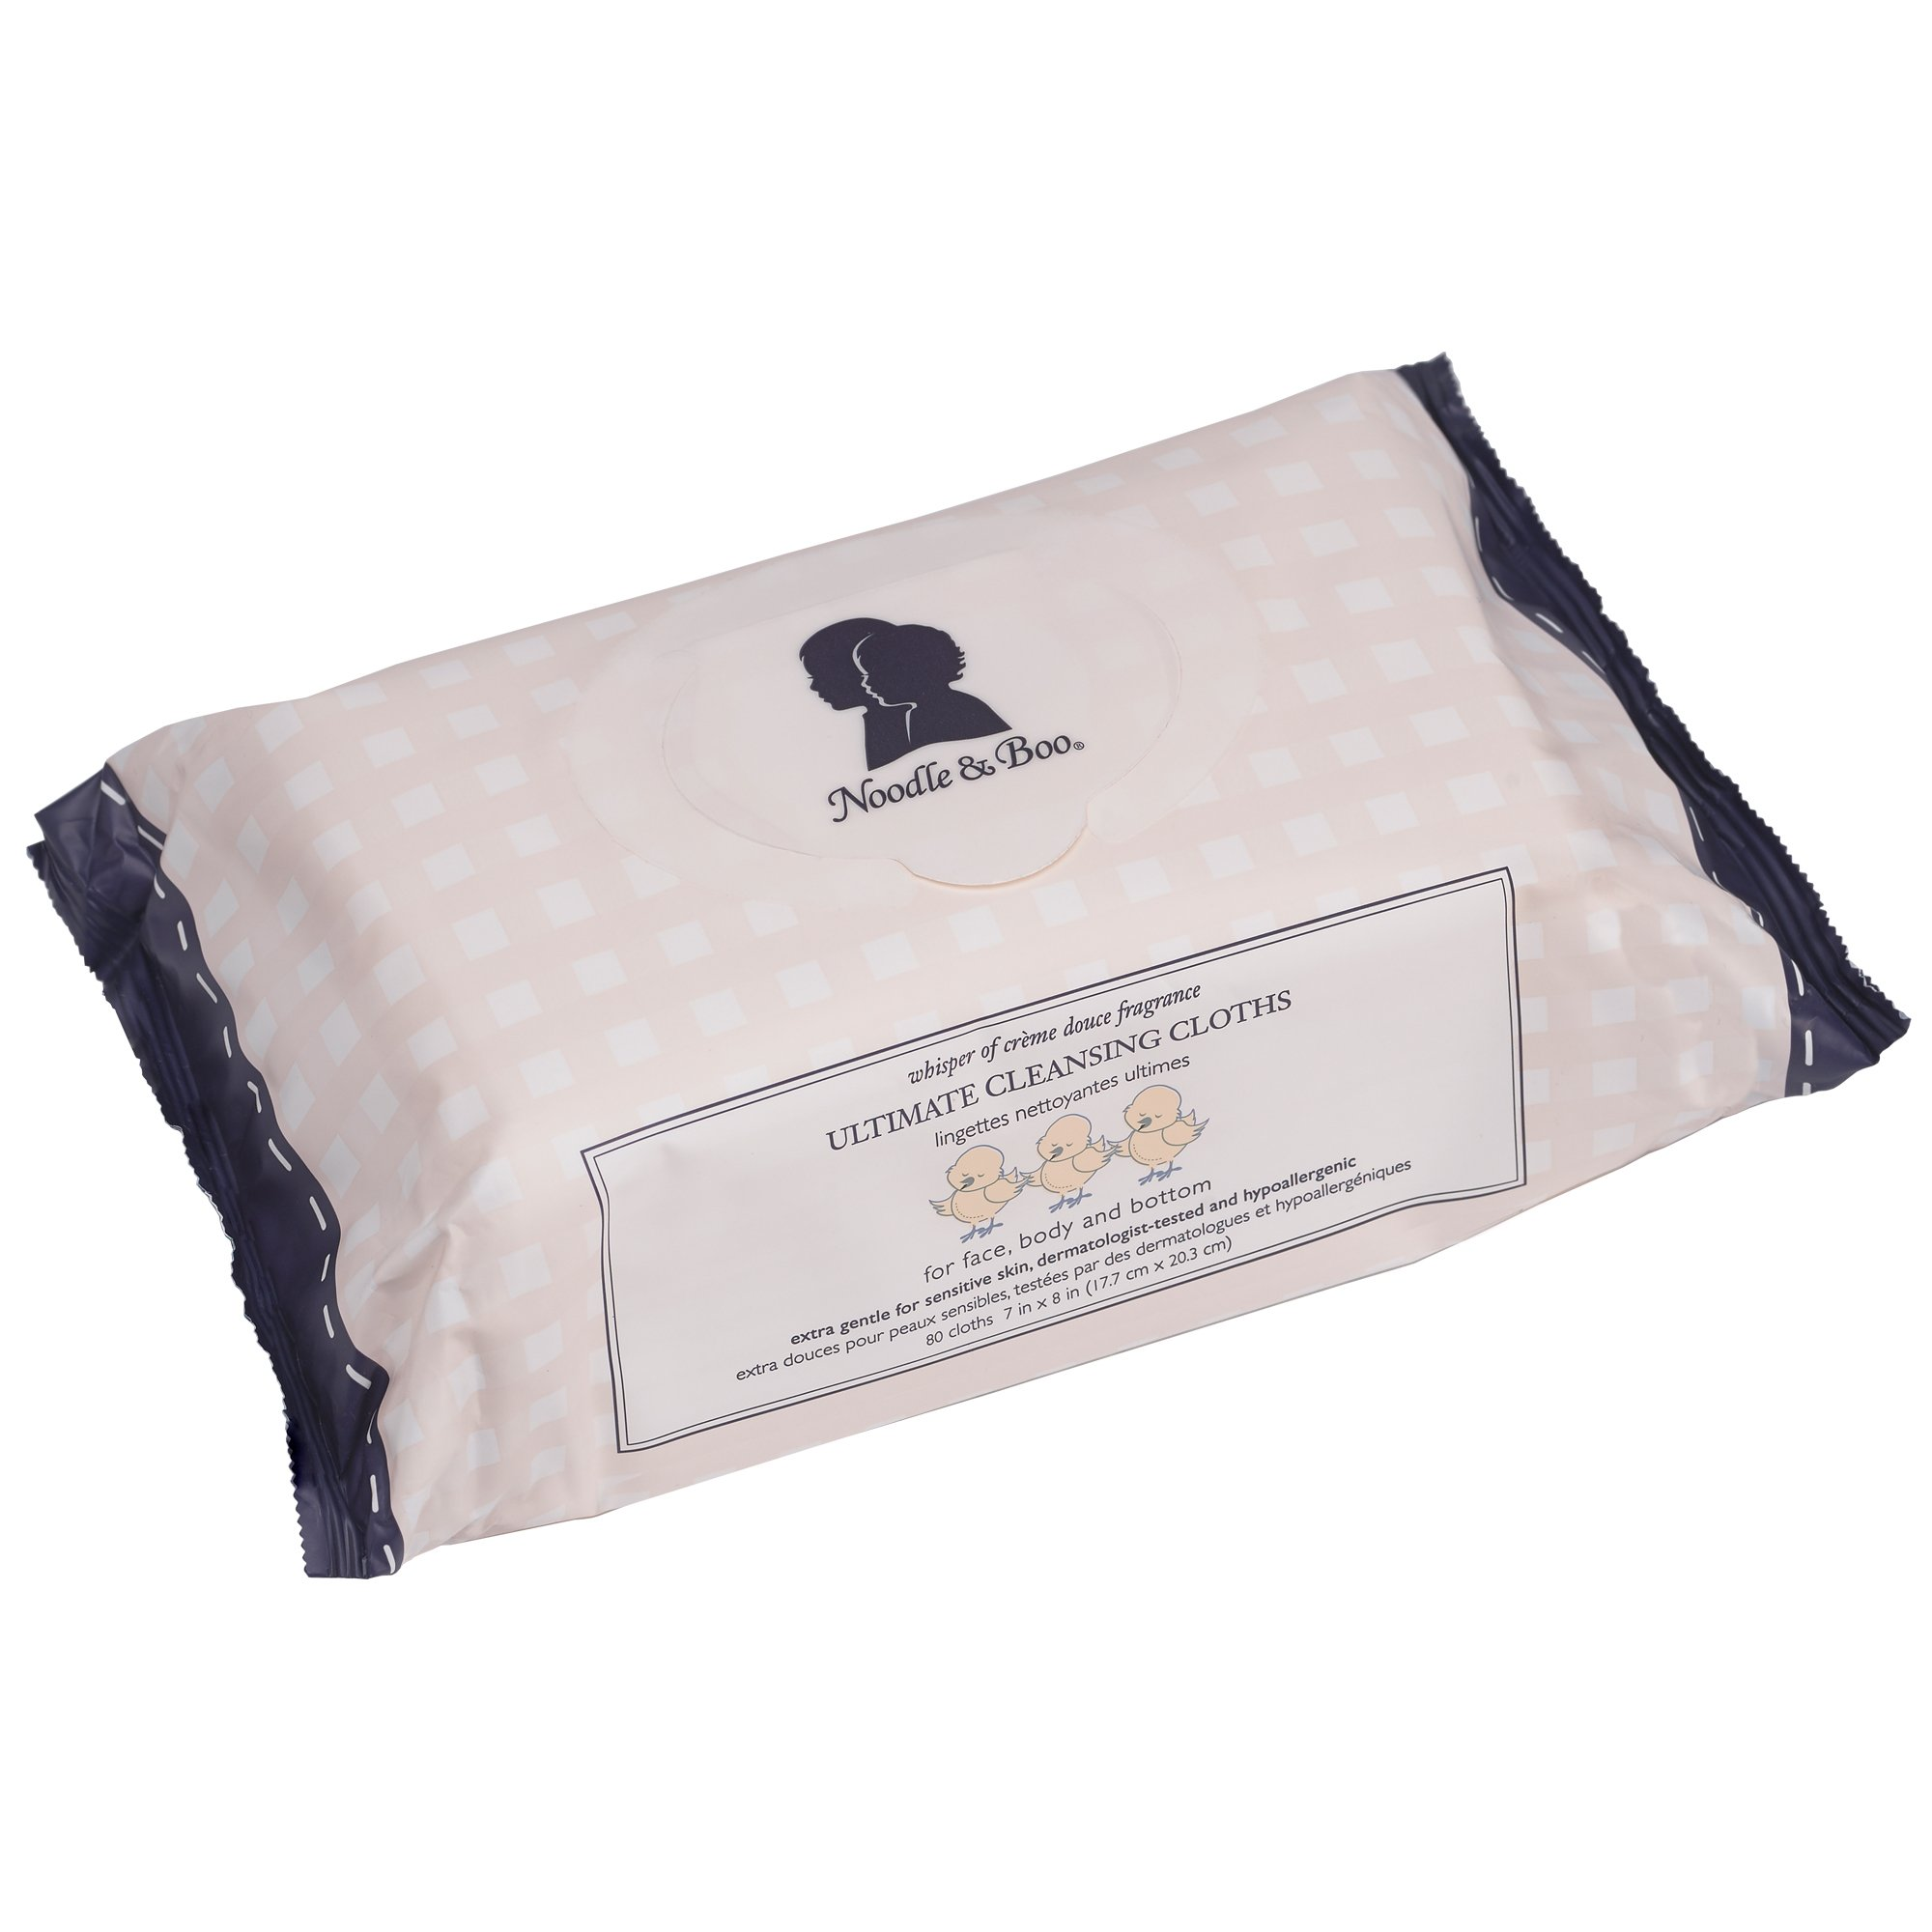 Noodle & Boo Ultimate Cleansing Cloths for Baby; Hypoallergenic, Sensitive Skin, Face, Hand and Body Wipes